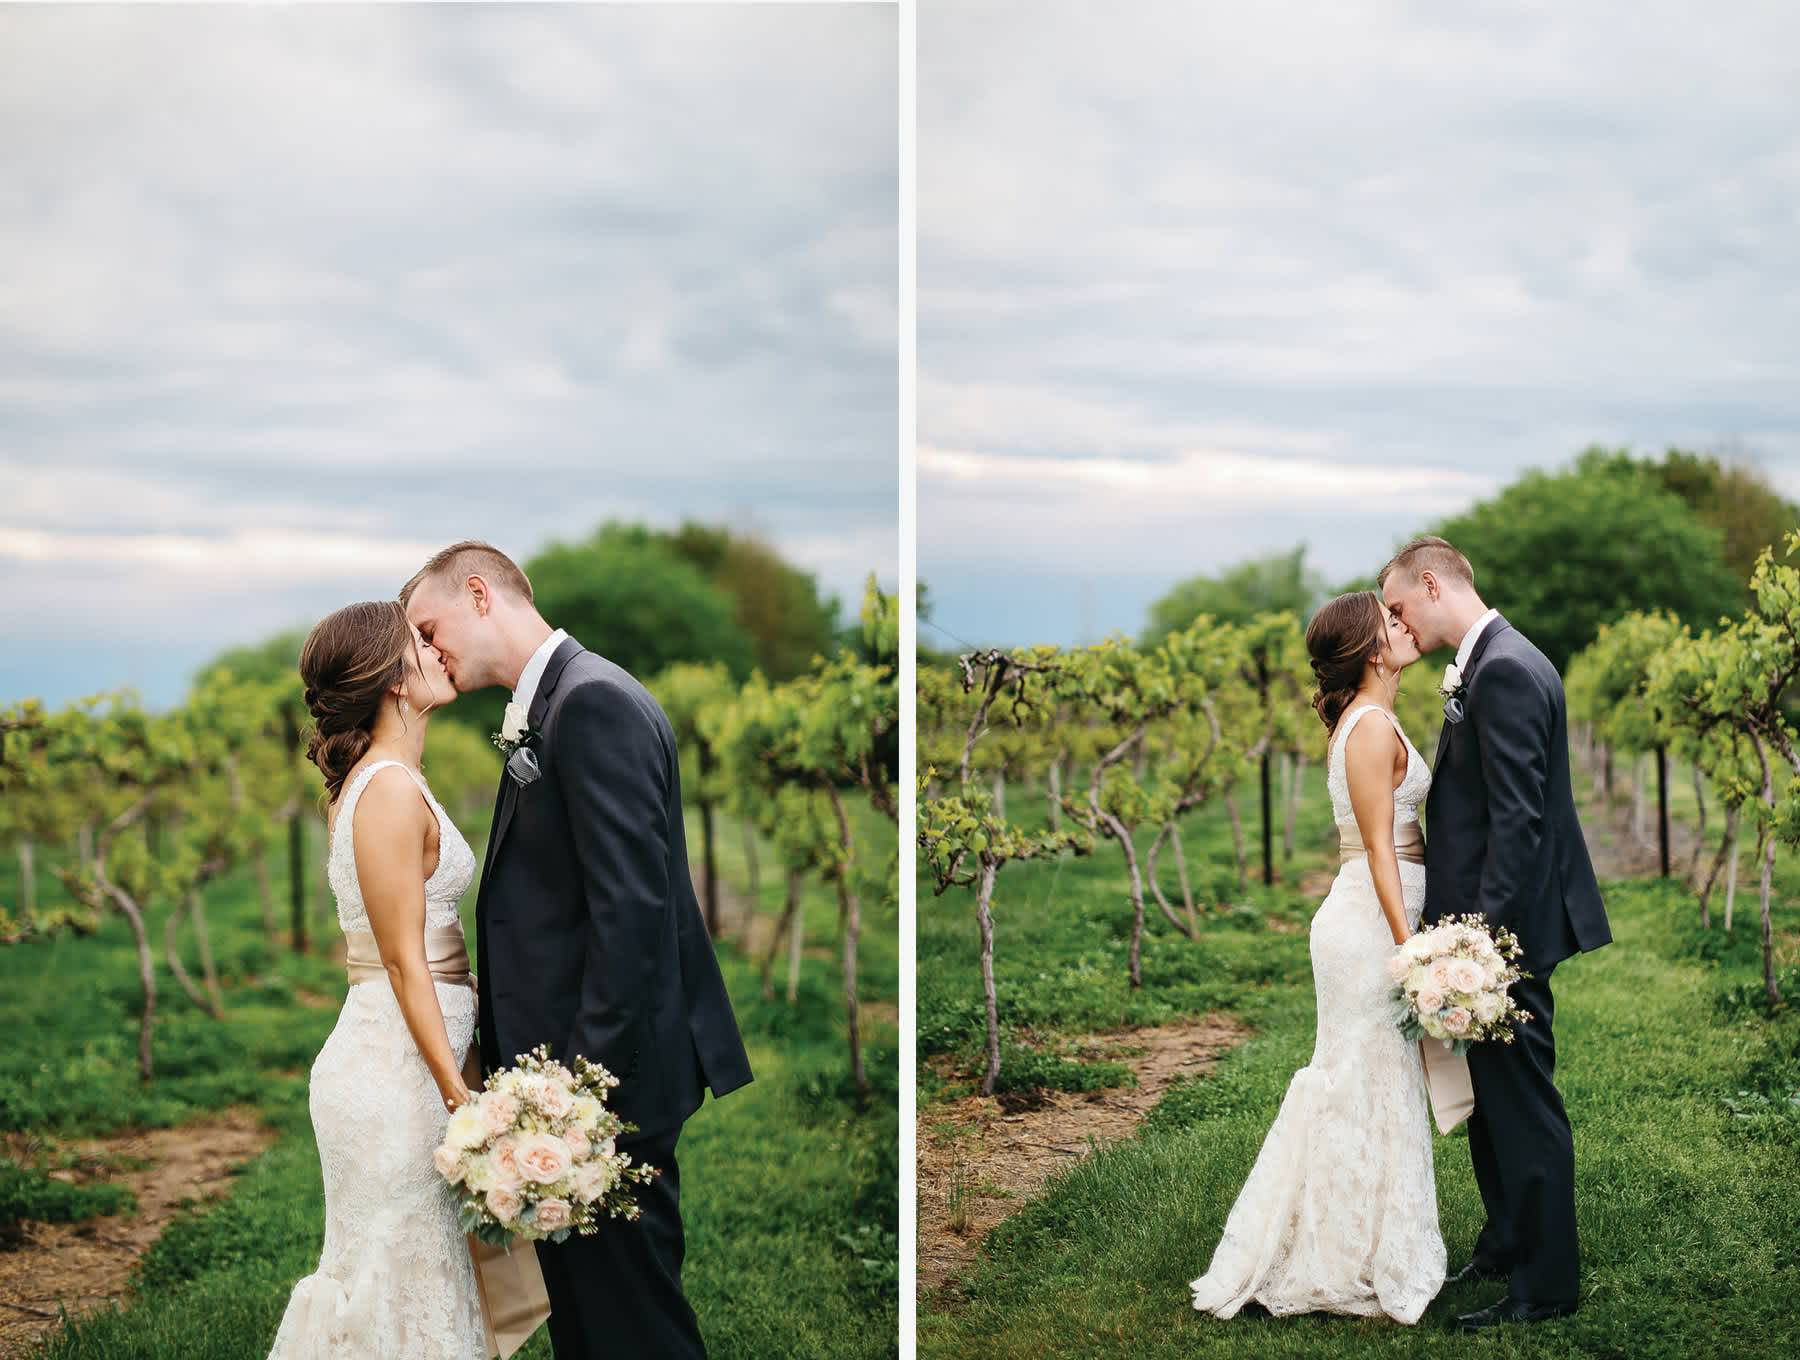 rosebank-winery-pennsylvania-sunset-wedding-day-photos